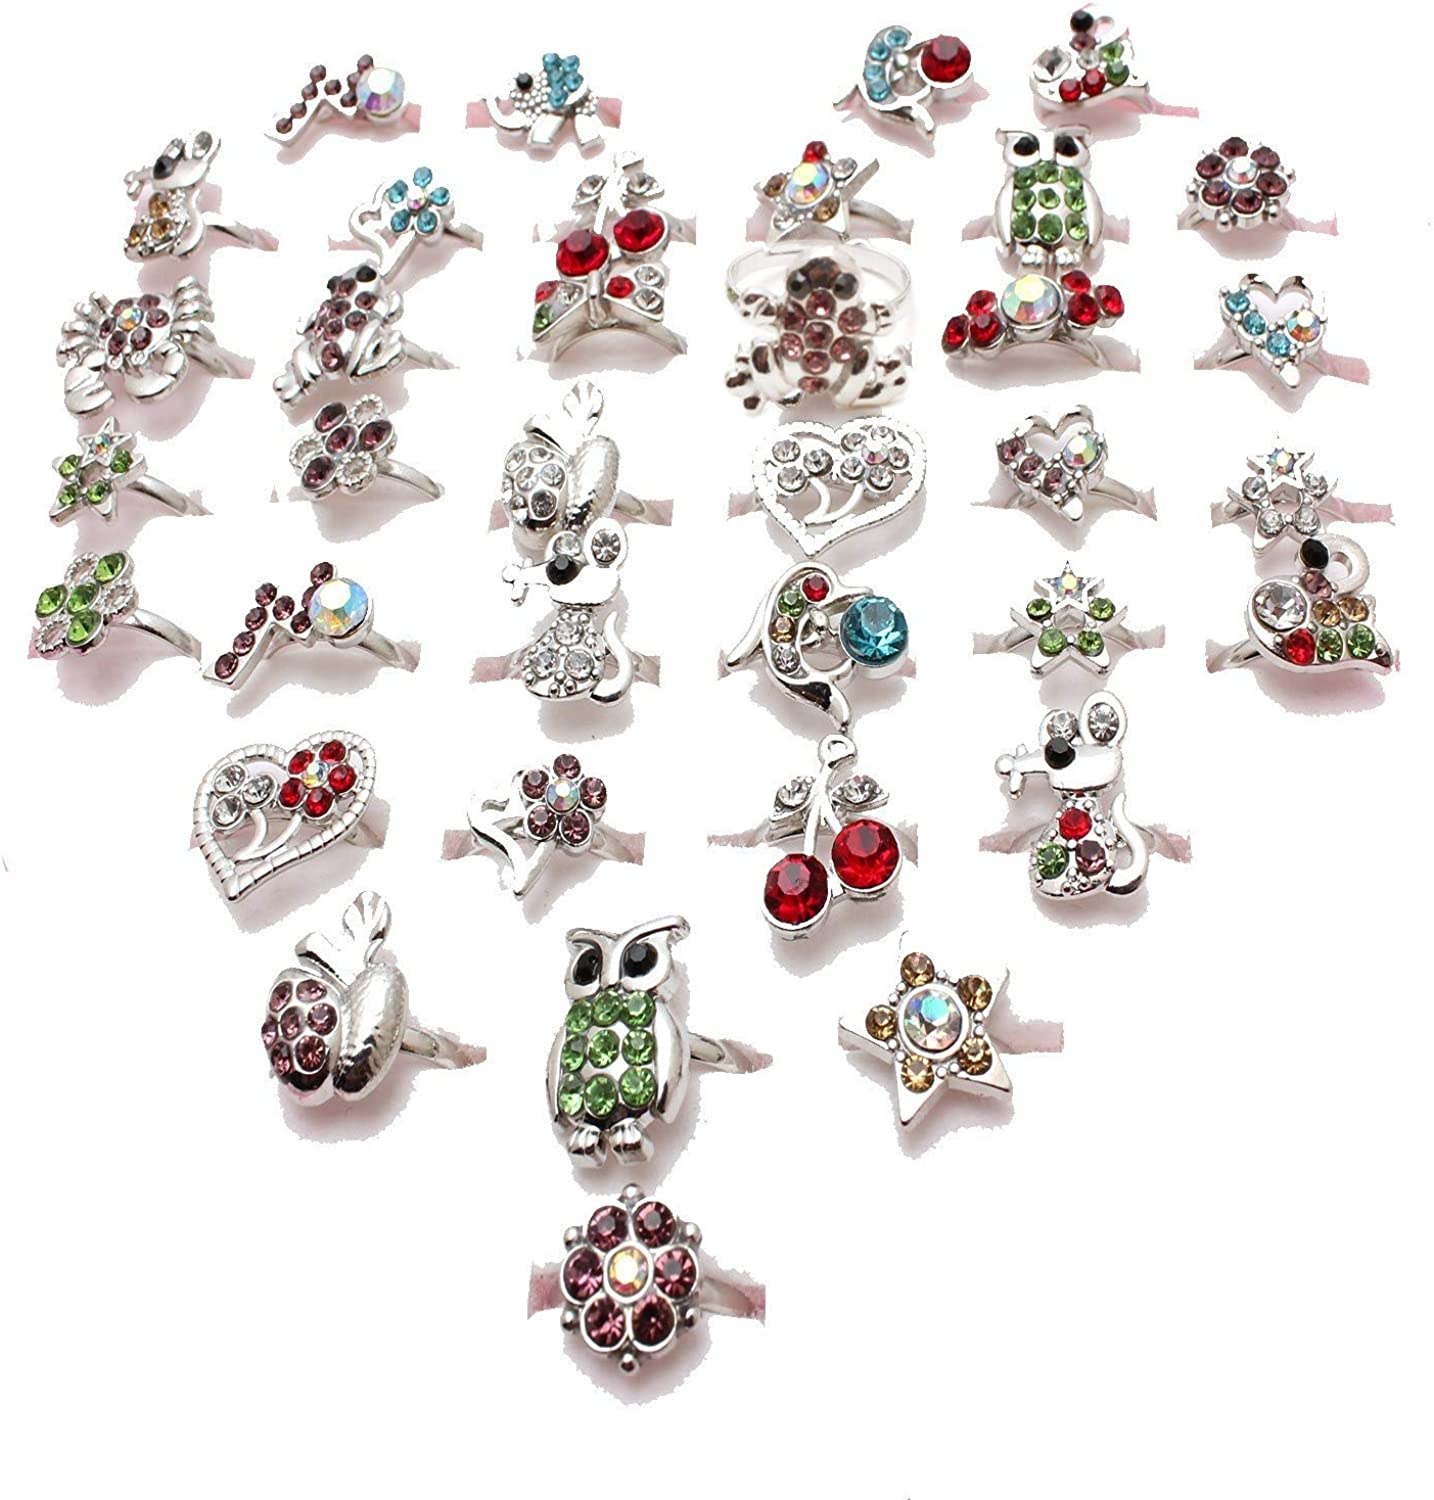 Kids Ring Little Girls Jewelry Adjustable Pretend Play and Dress Up Rings Mixed Cartoon Animals Flowers Fruit Crystal Pack of 36pcs gift box